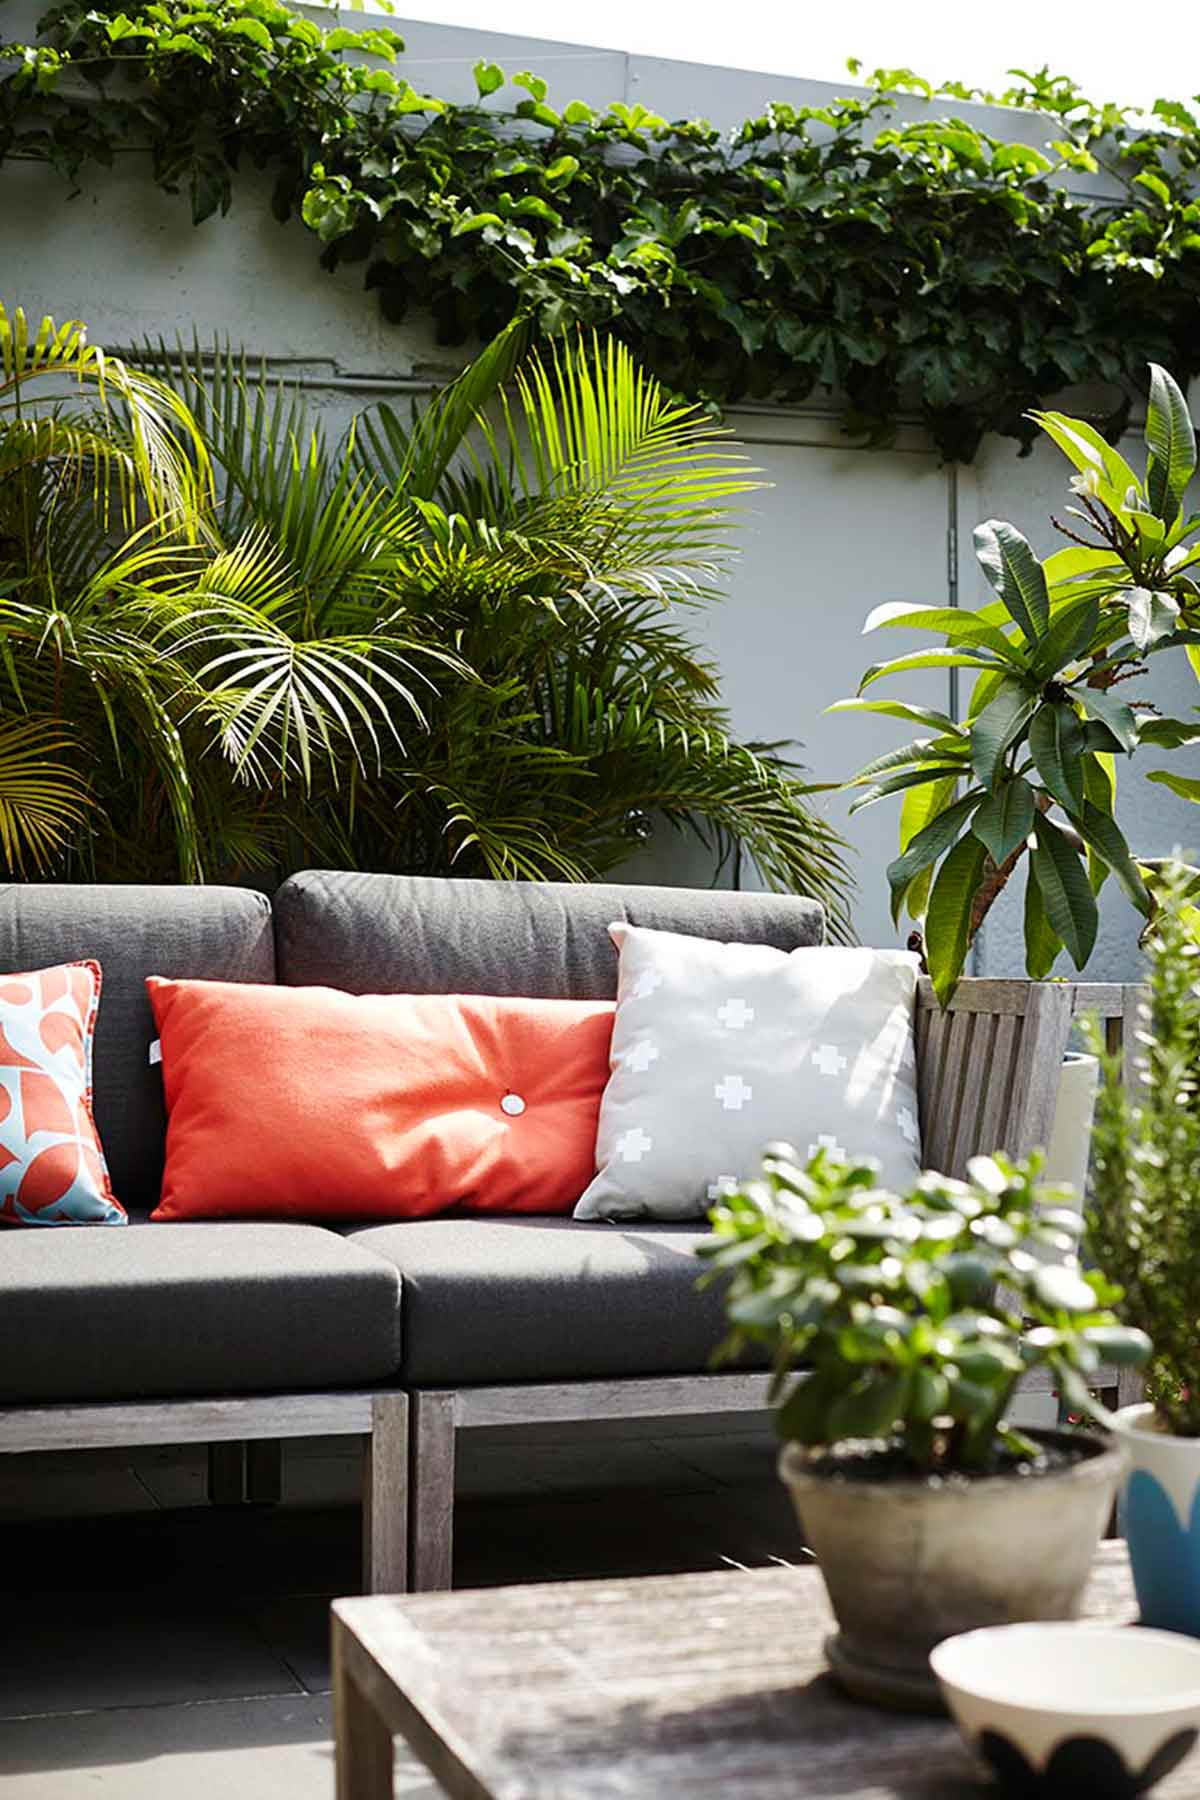 Pay attention not to over water potted plants. Image by Natalie Hunfalvay from our  Kingsford project